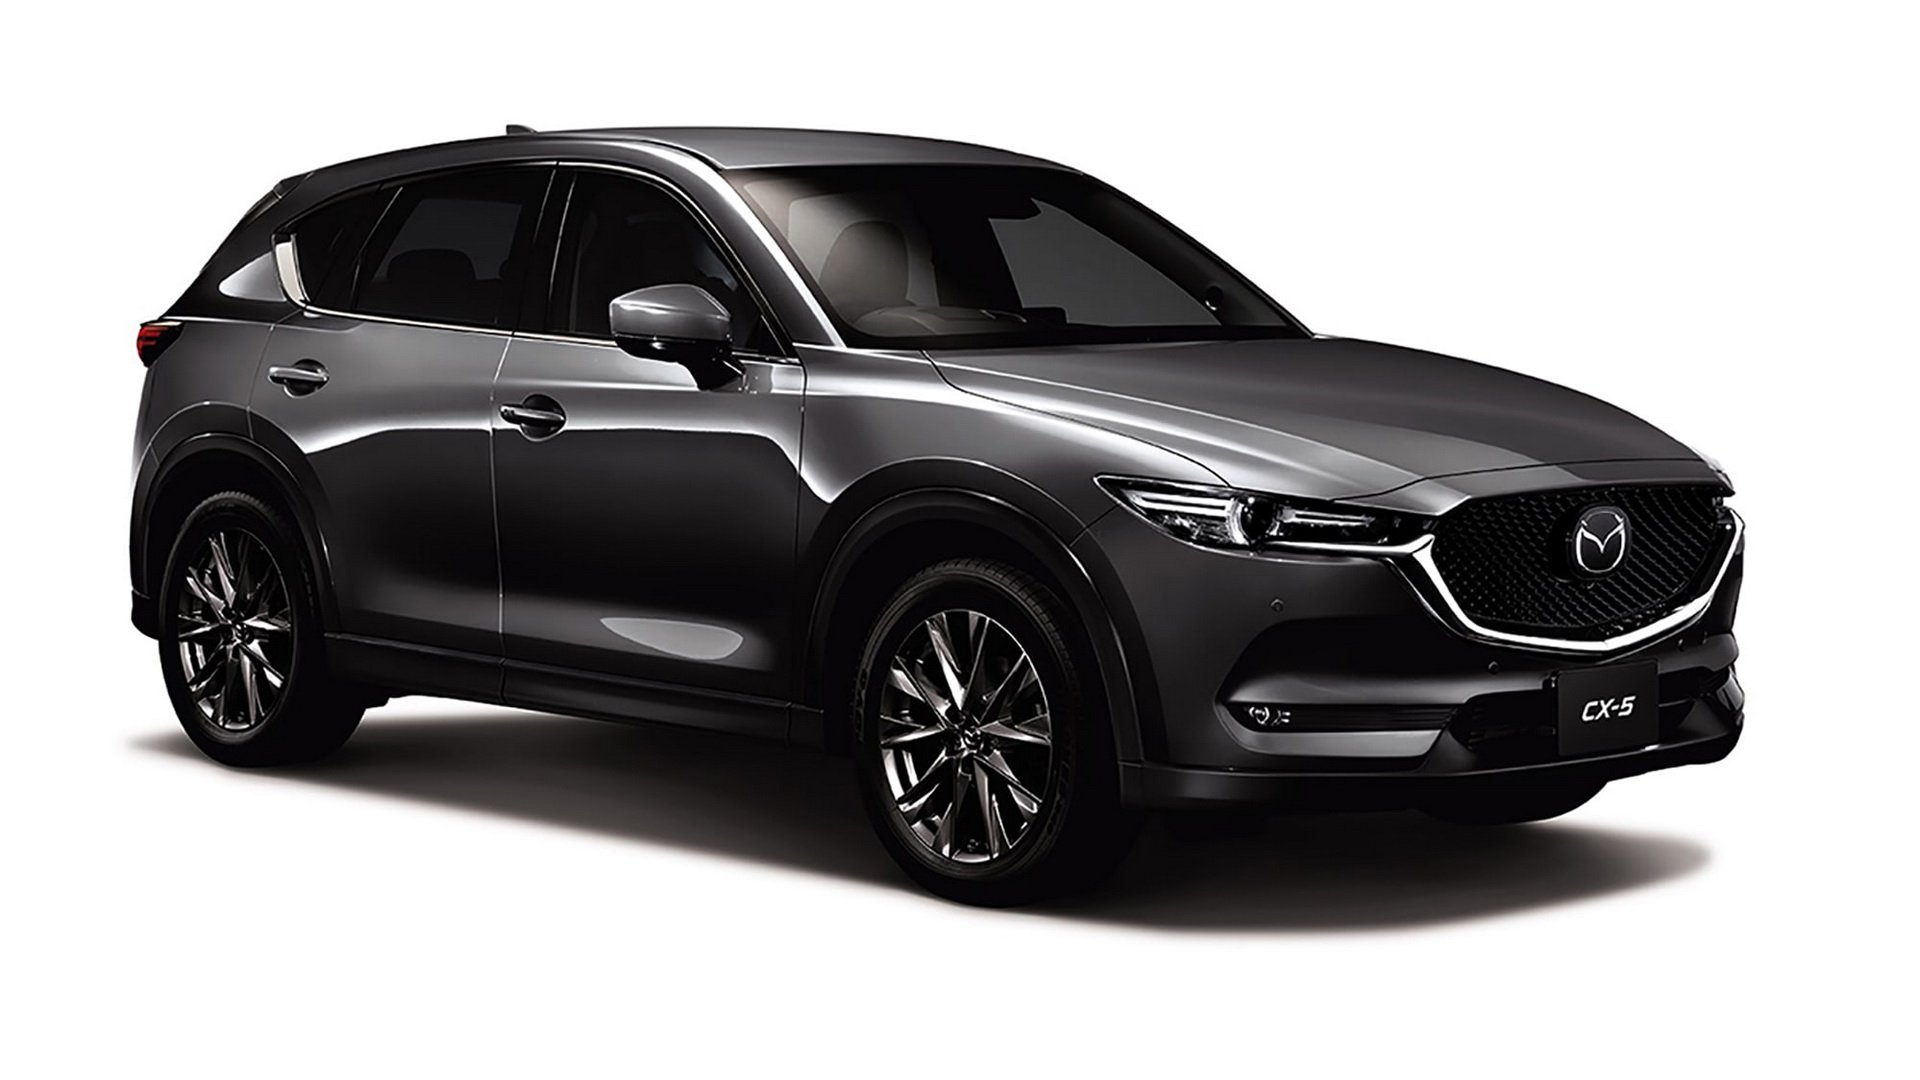 2019 mazda cx 5 gets 2 5 liter turbo android auto and apple carplay in japan autoevolution. Black Bedroom Furniture Sets. Home Design Ideas